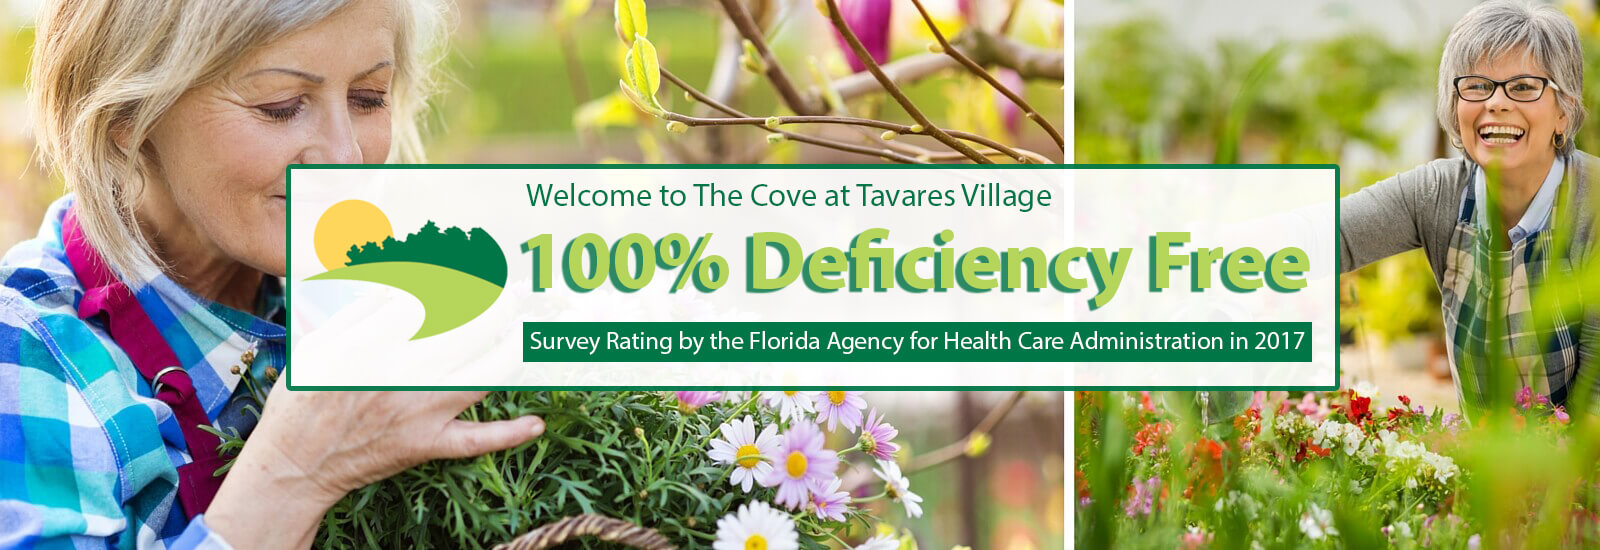 Deficiency-Free-Survey-AHCA-2017_The-Cove-at-Tavares-Village-2